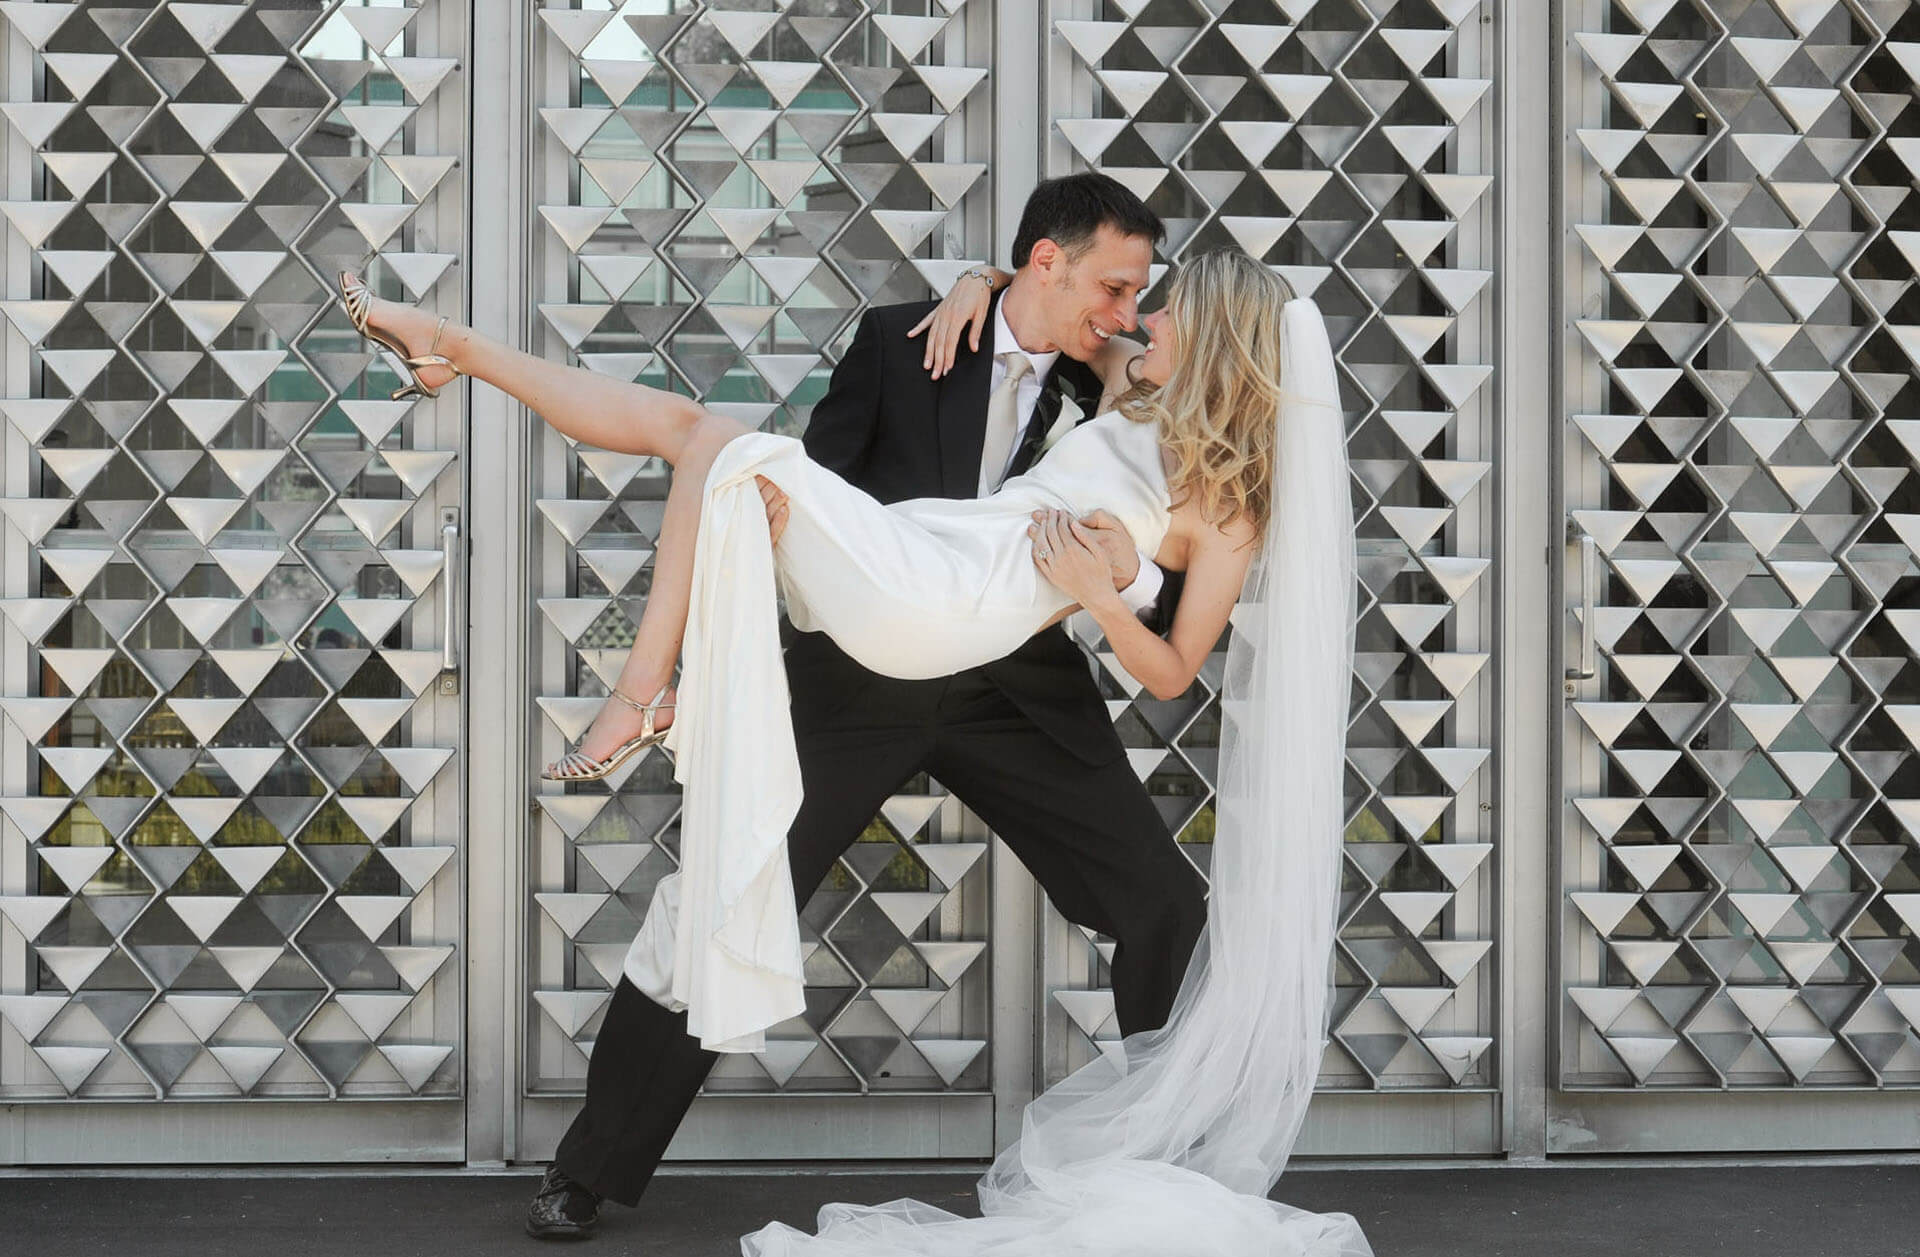 A groom picks up his bride for this fun, dramatic wedding portrait at Wayne State University in Detroit, Michigan.